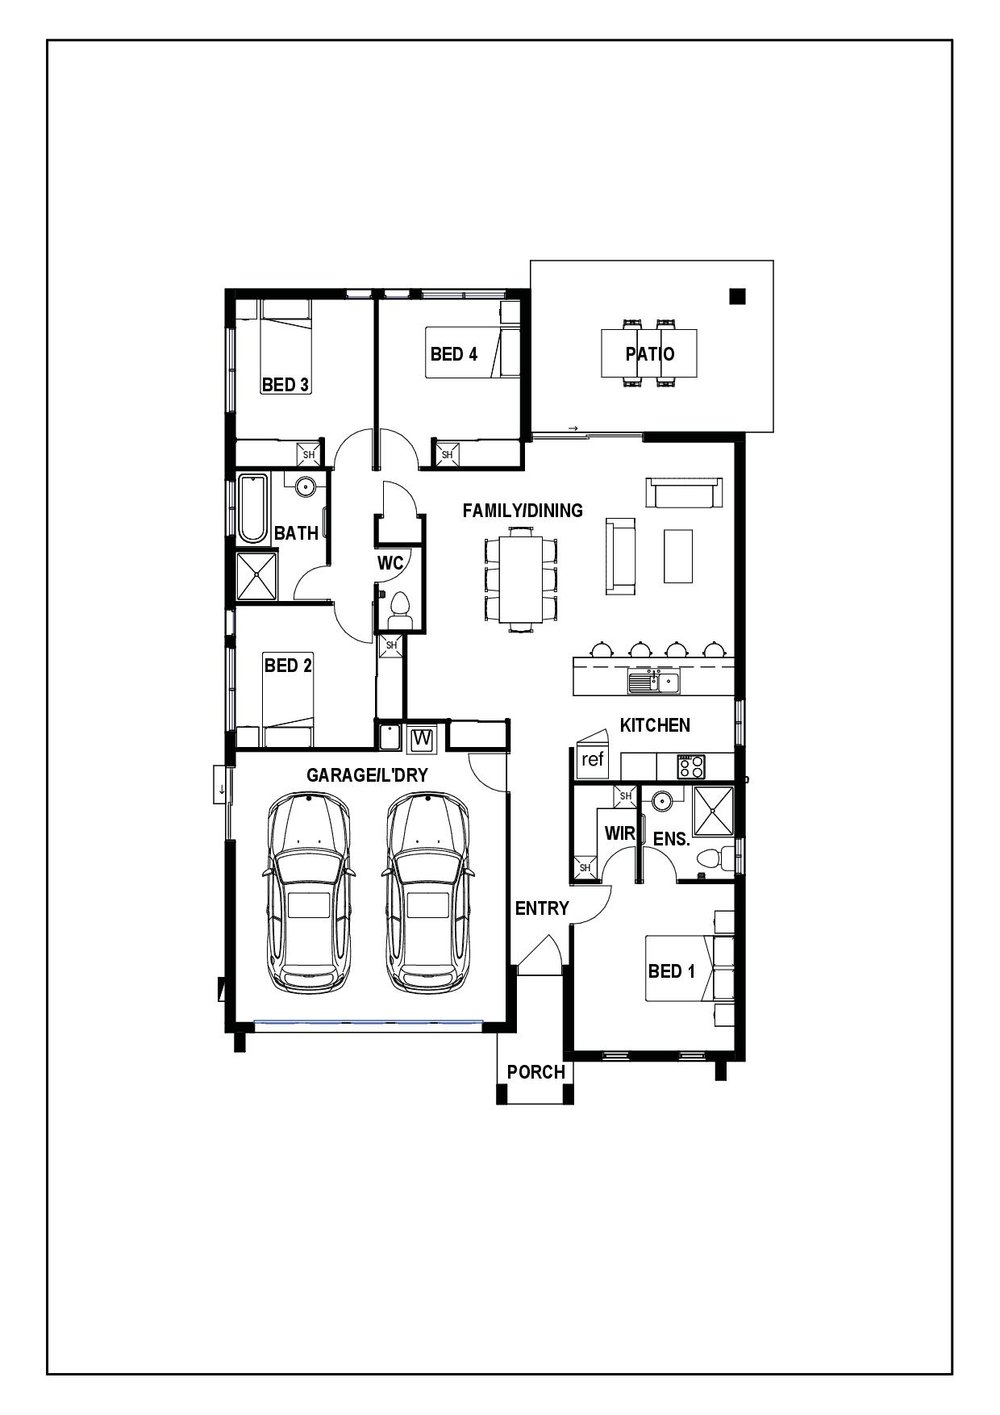 FLINDERS 177 A - Floor Plan.jpg